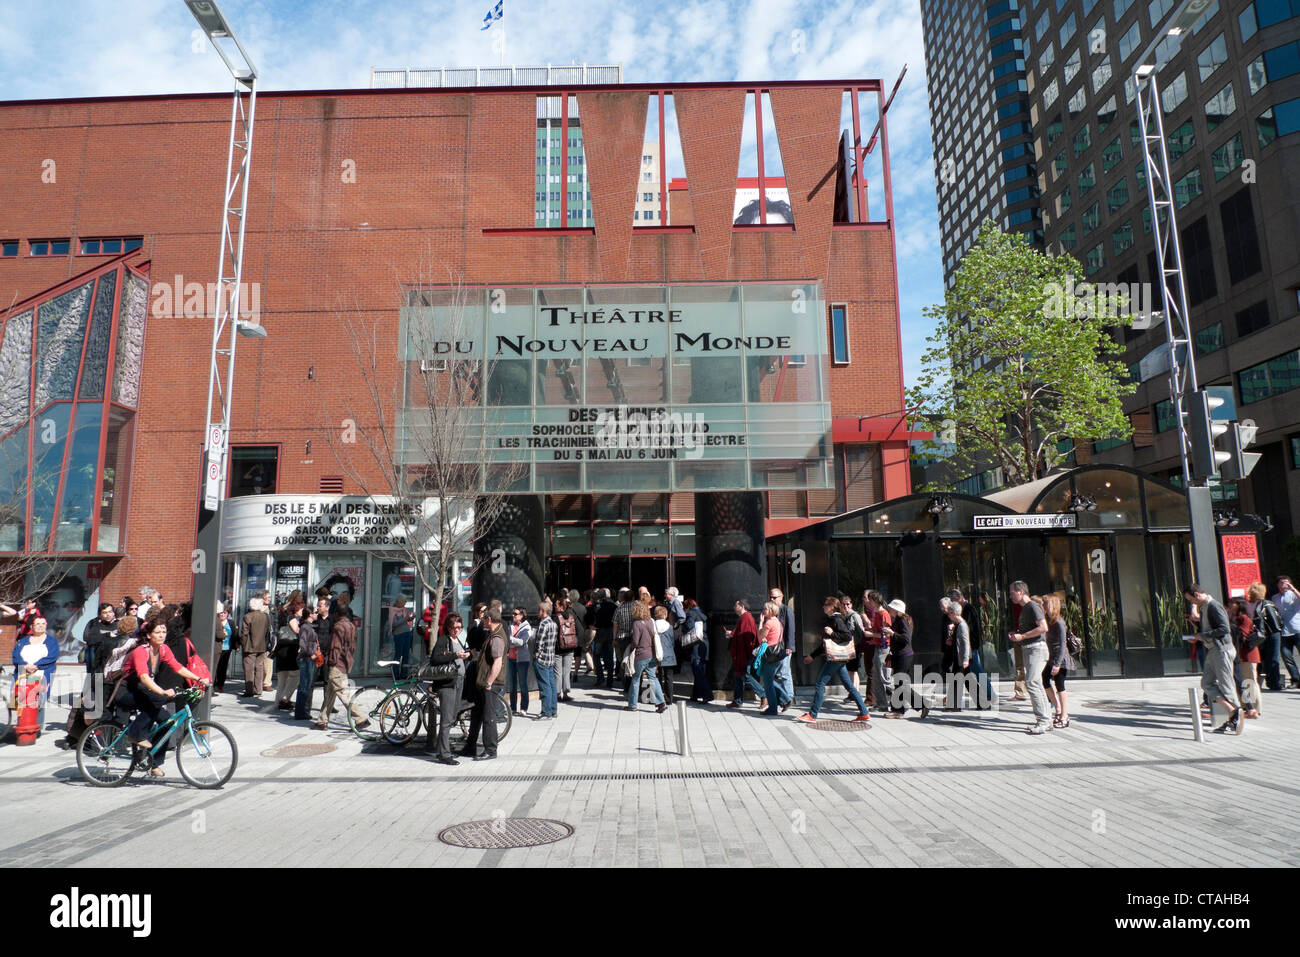 People in the street in a queue outside the entrance of the Theatre du Noveau Monde building in the city of Montreal - Stock Image